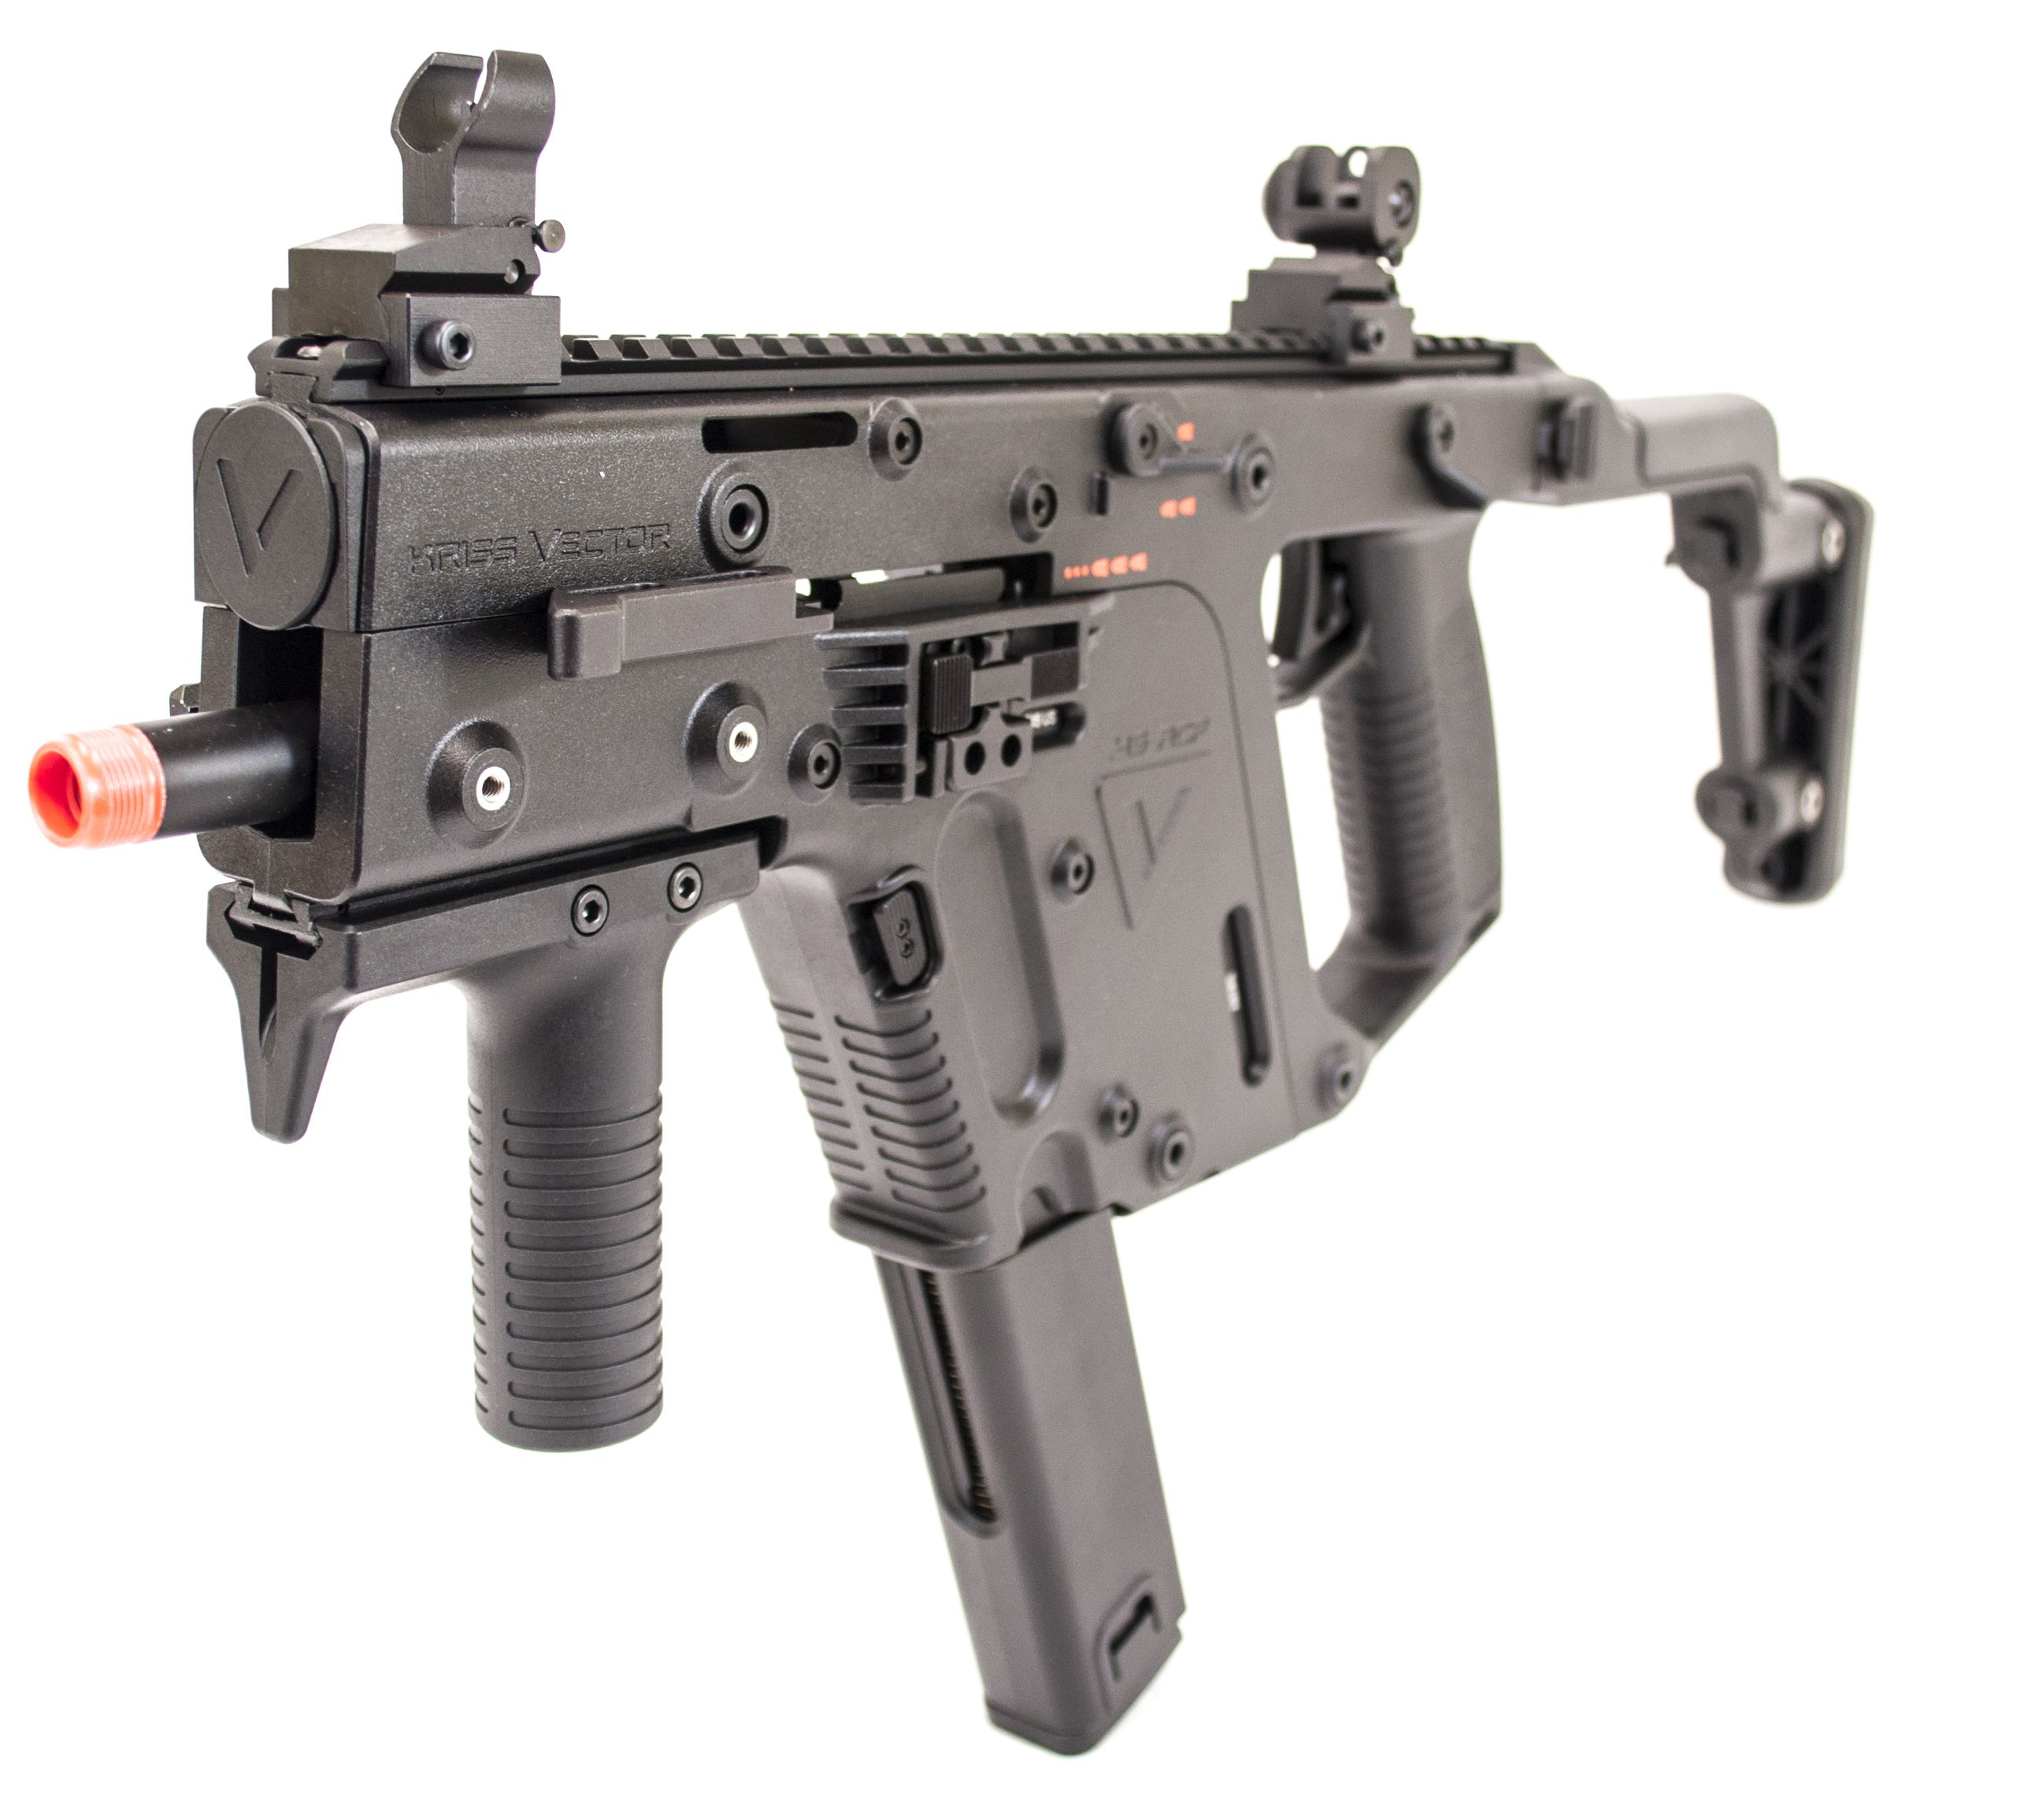 KWA Kriss Vector. One of the most futuristic airsoft guns